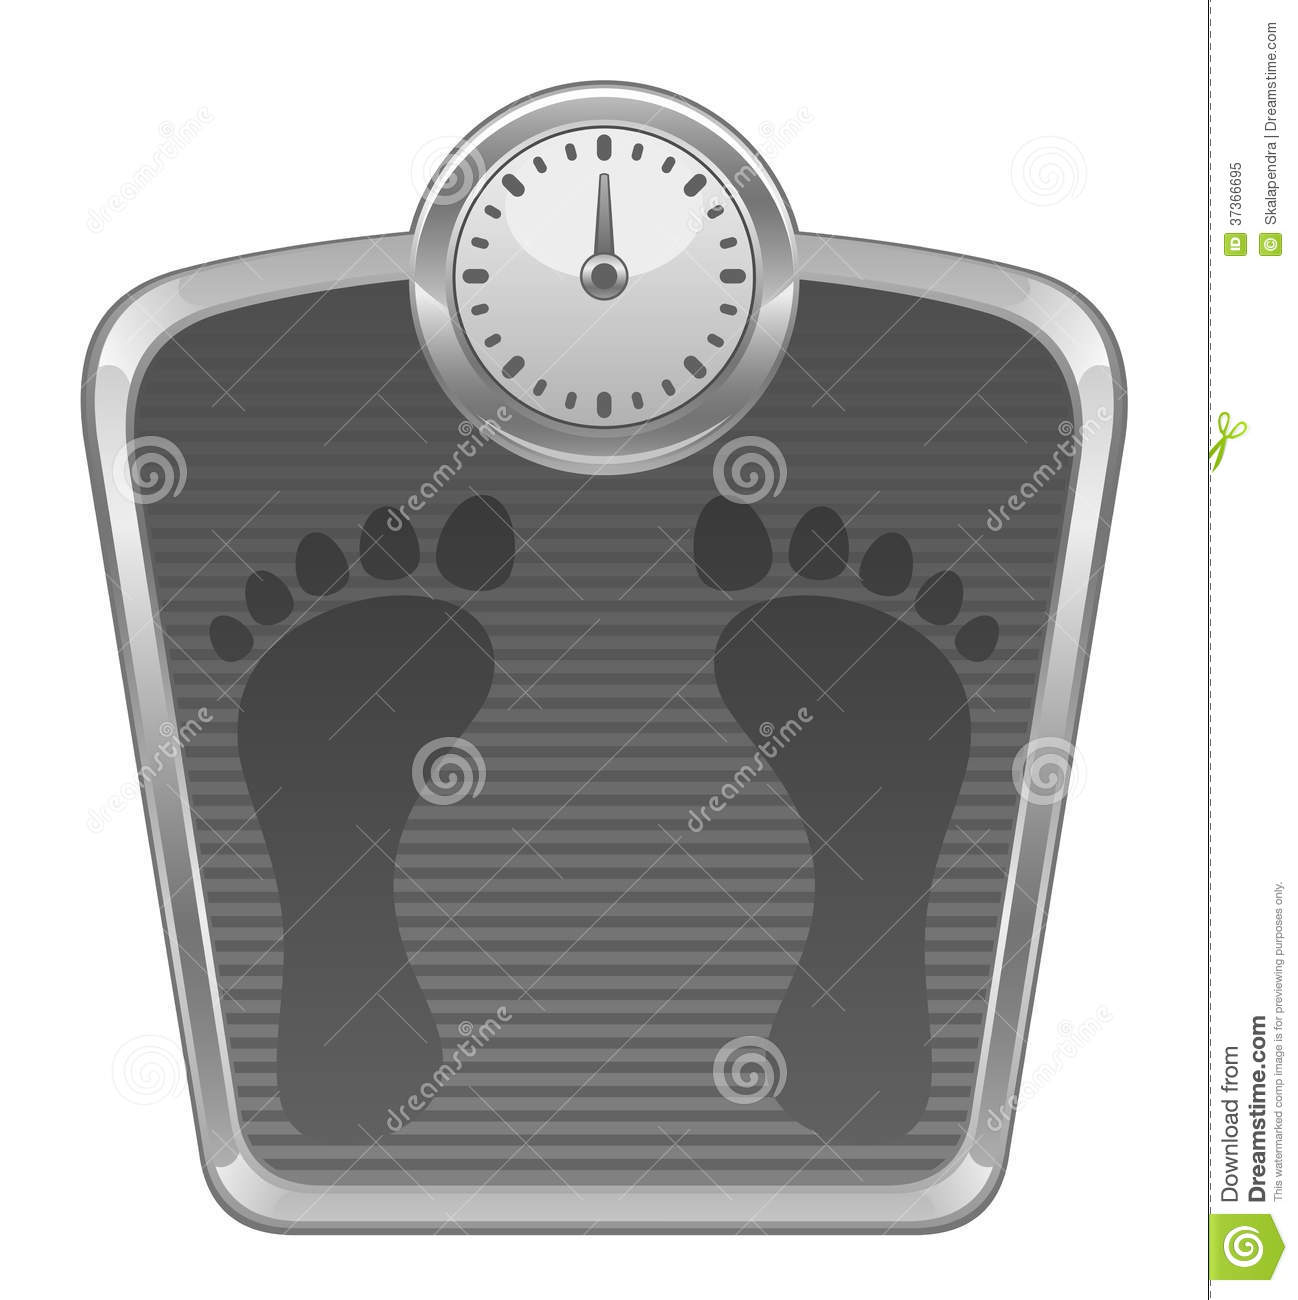 Bathroom Scales Royalty Free Stock Photo   Image  37366695